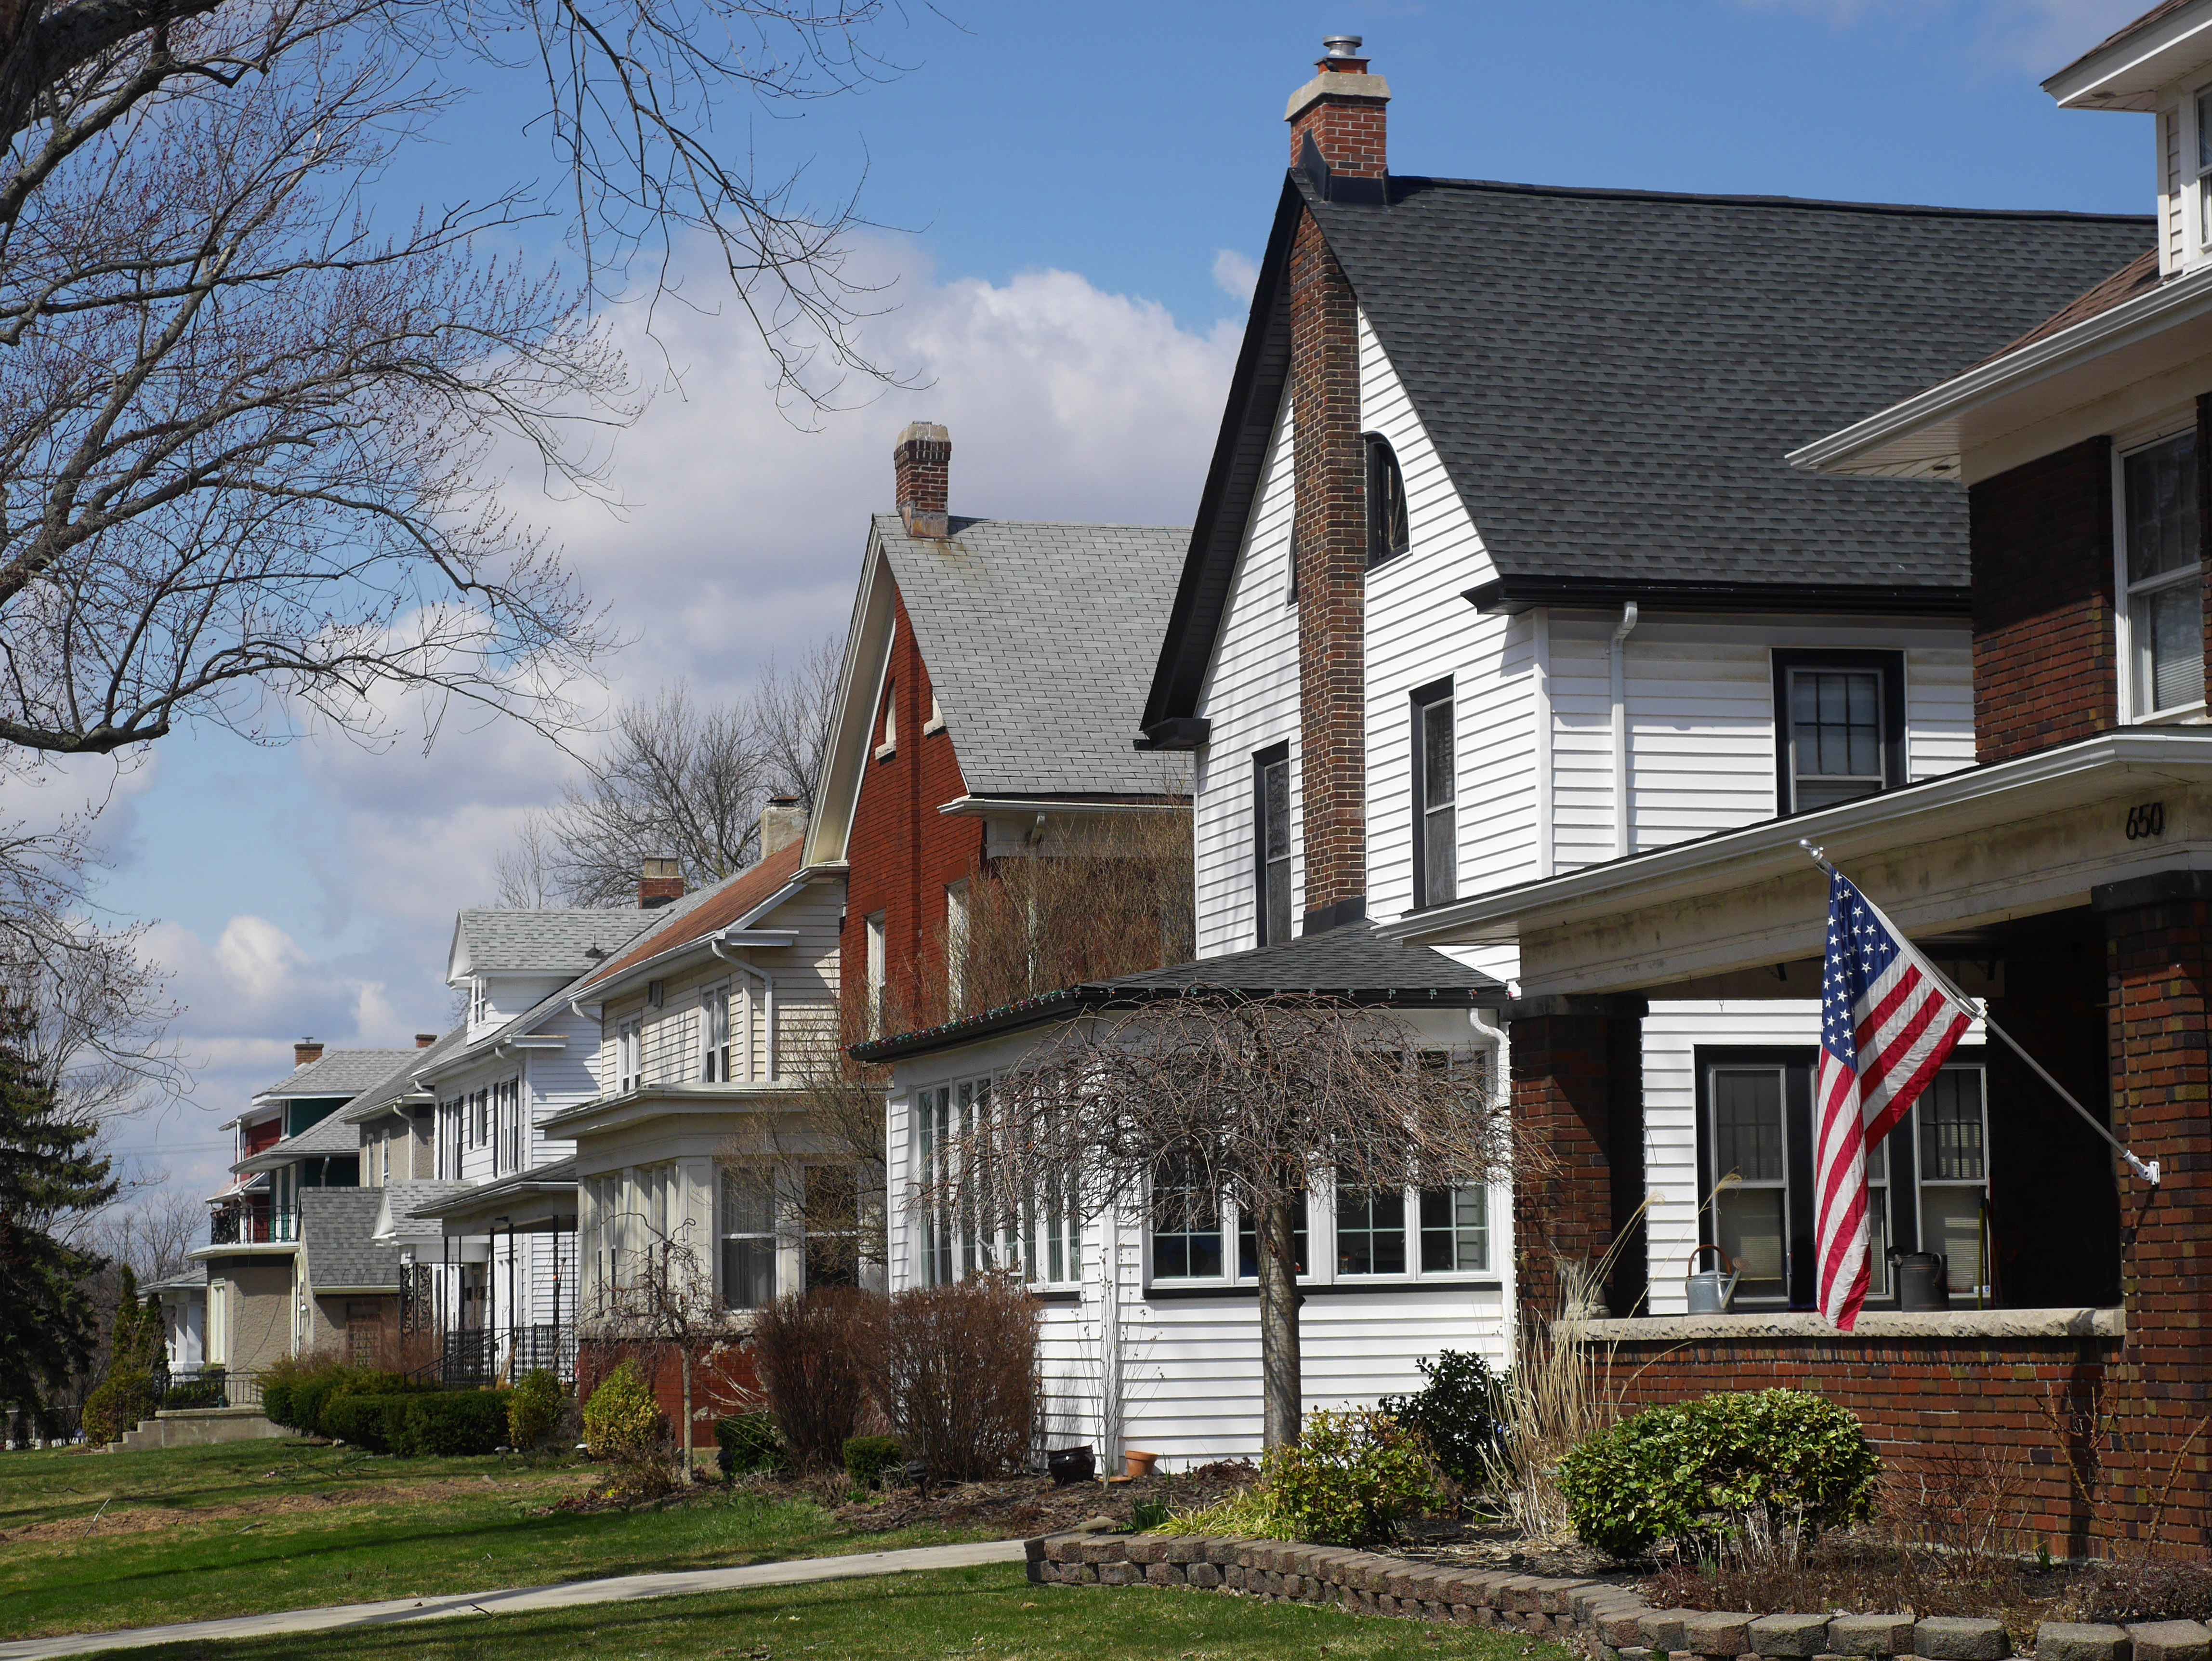 middle class houses on American suburban street